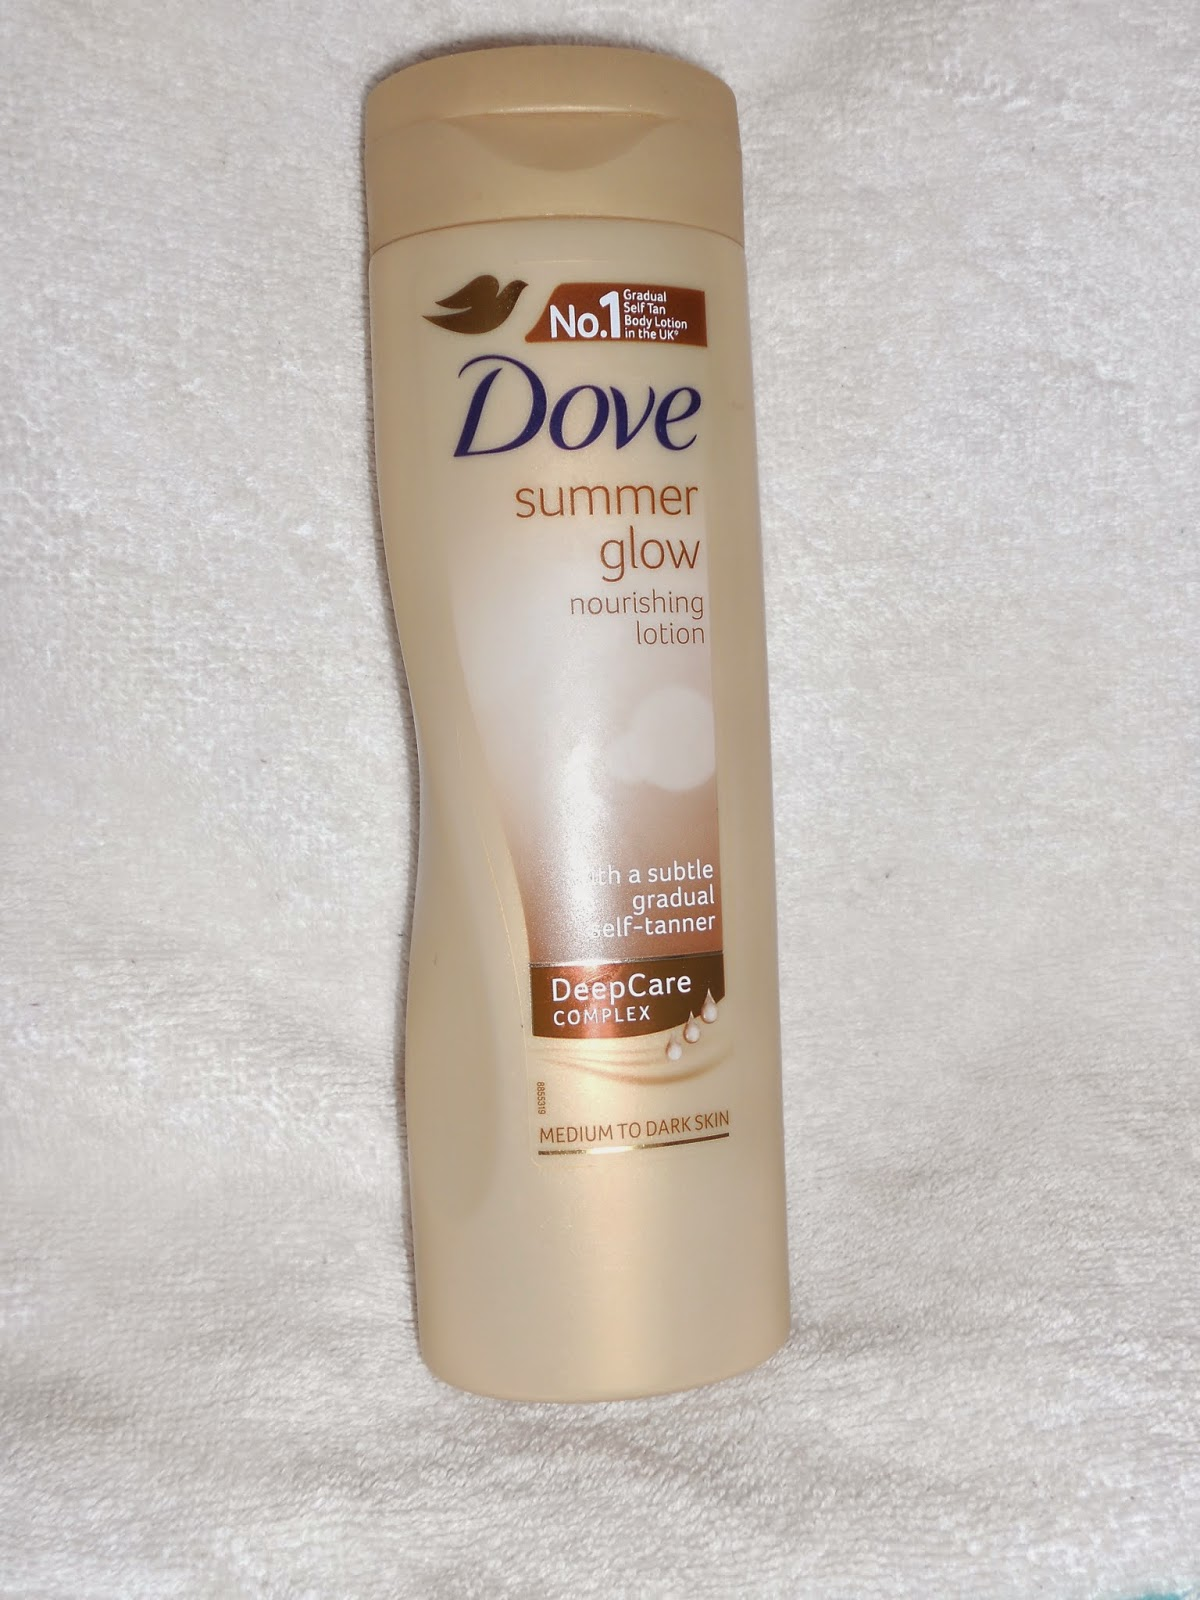 dove summer glow boots